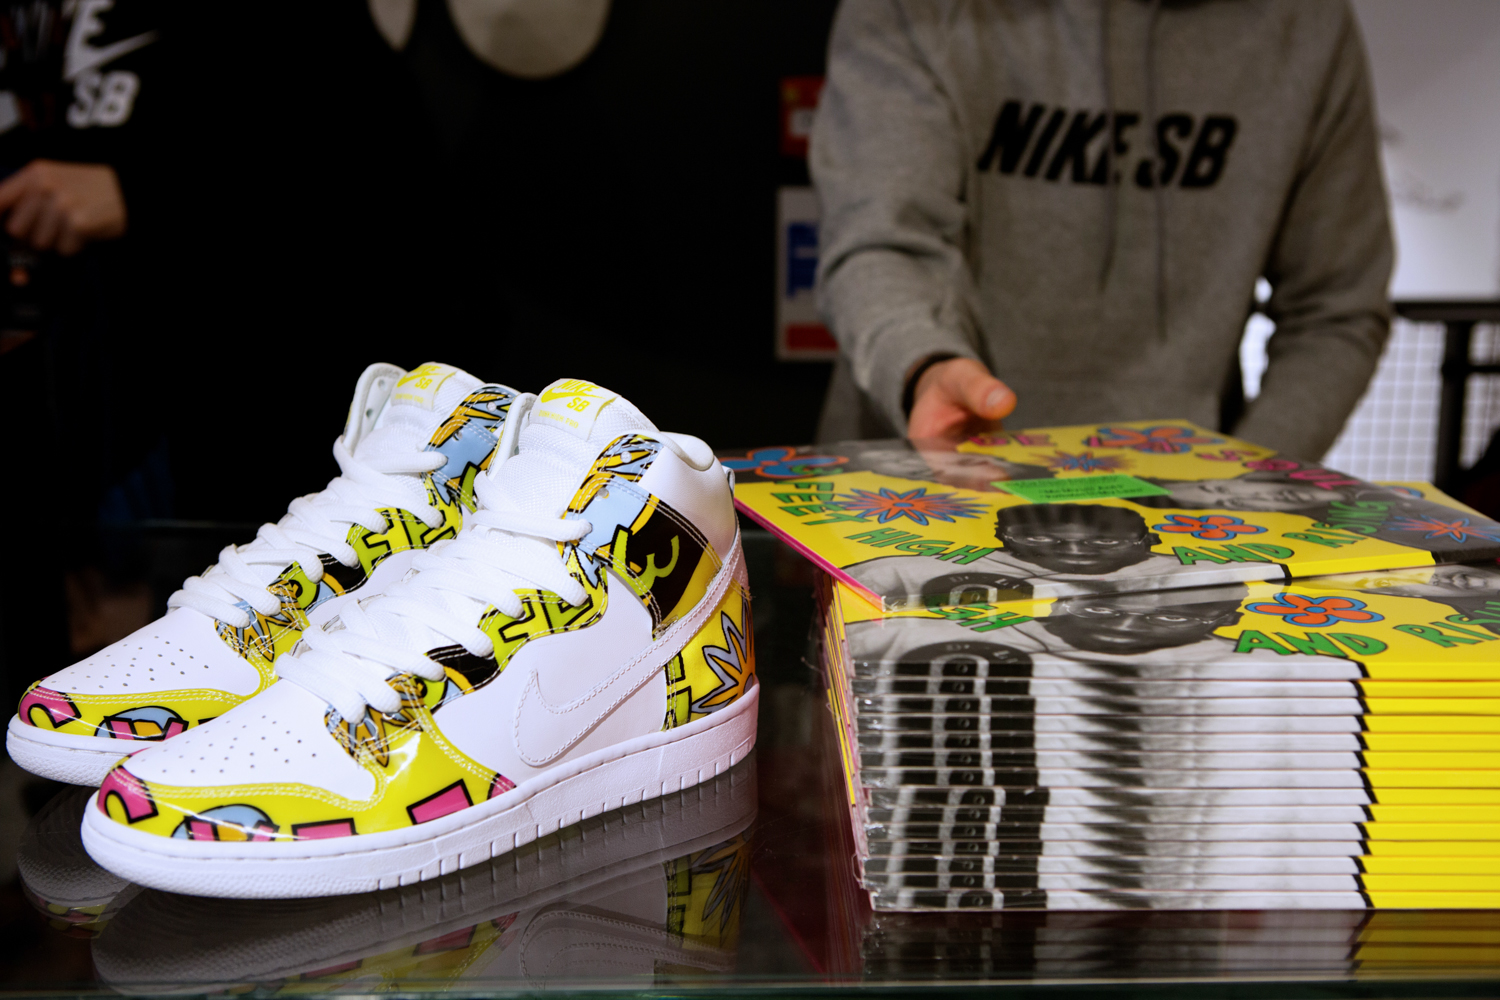 Nike SB Carnaby Street 'De La Soul' Competition Launch and Event Recap